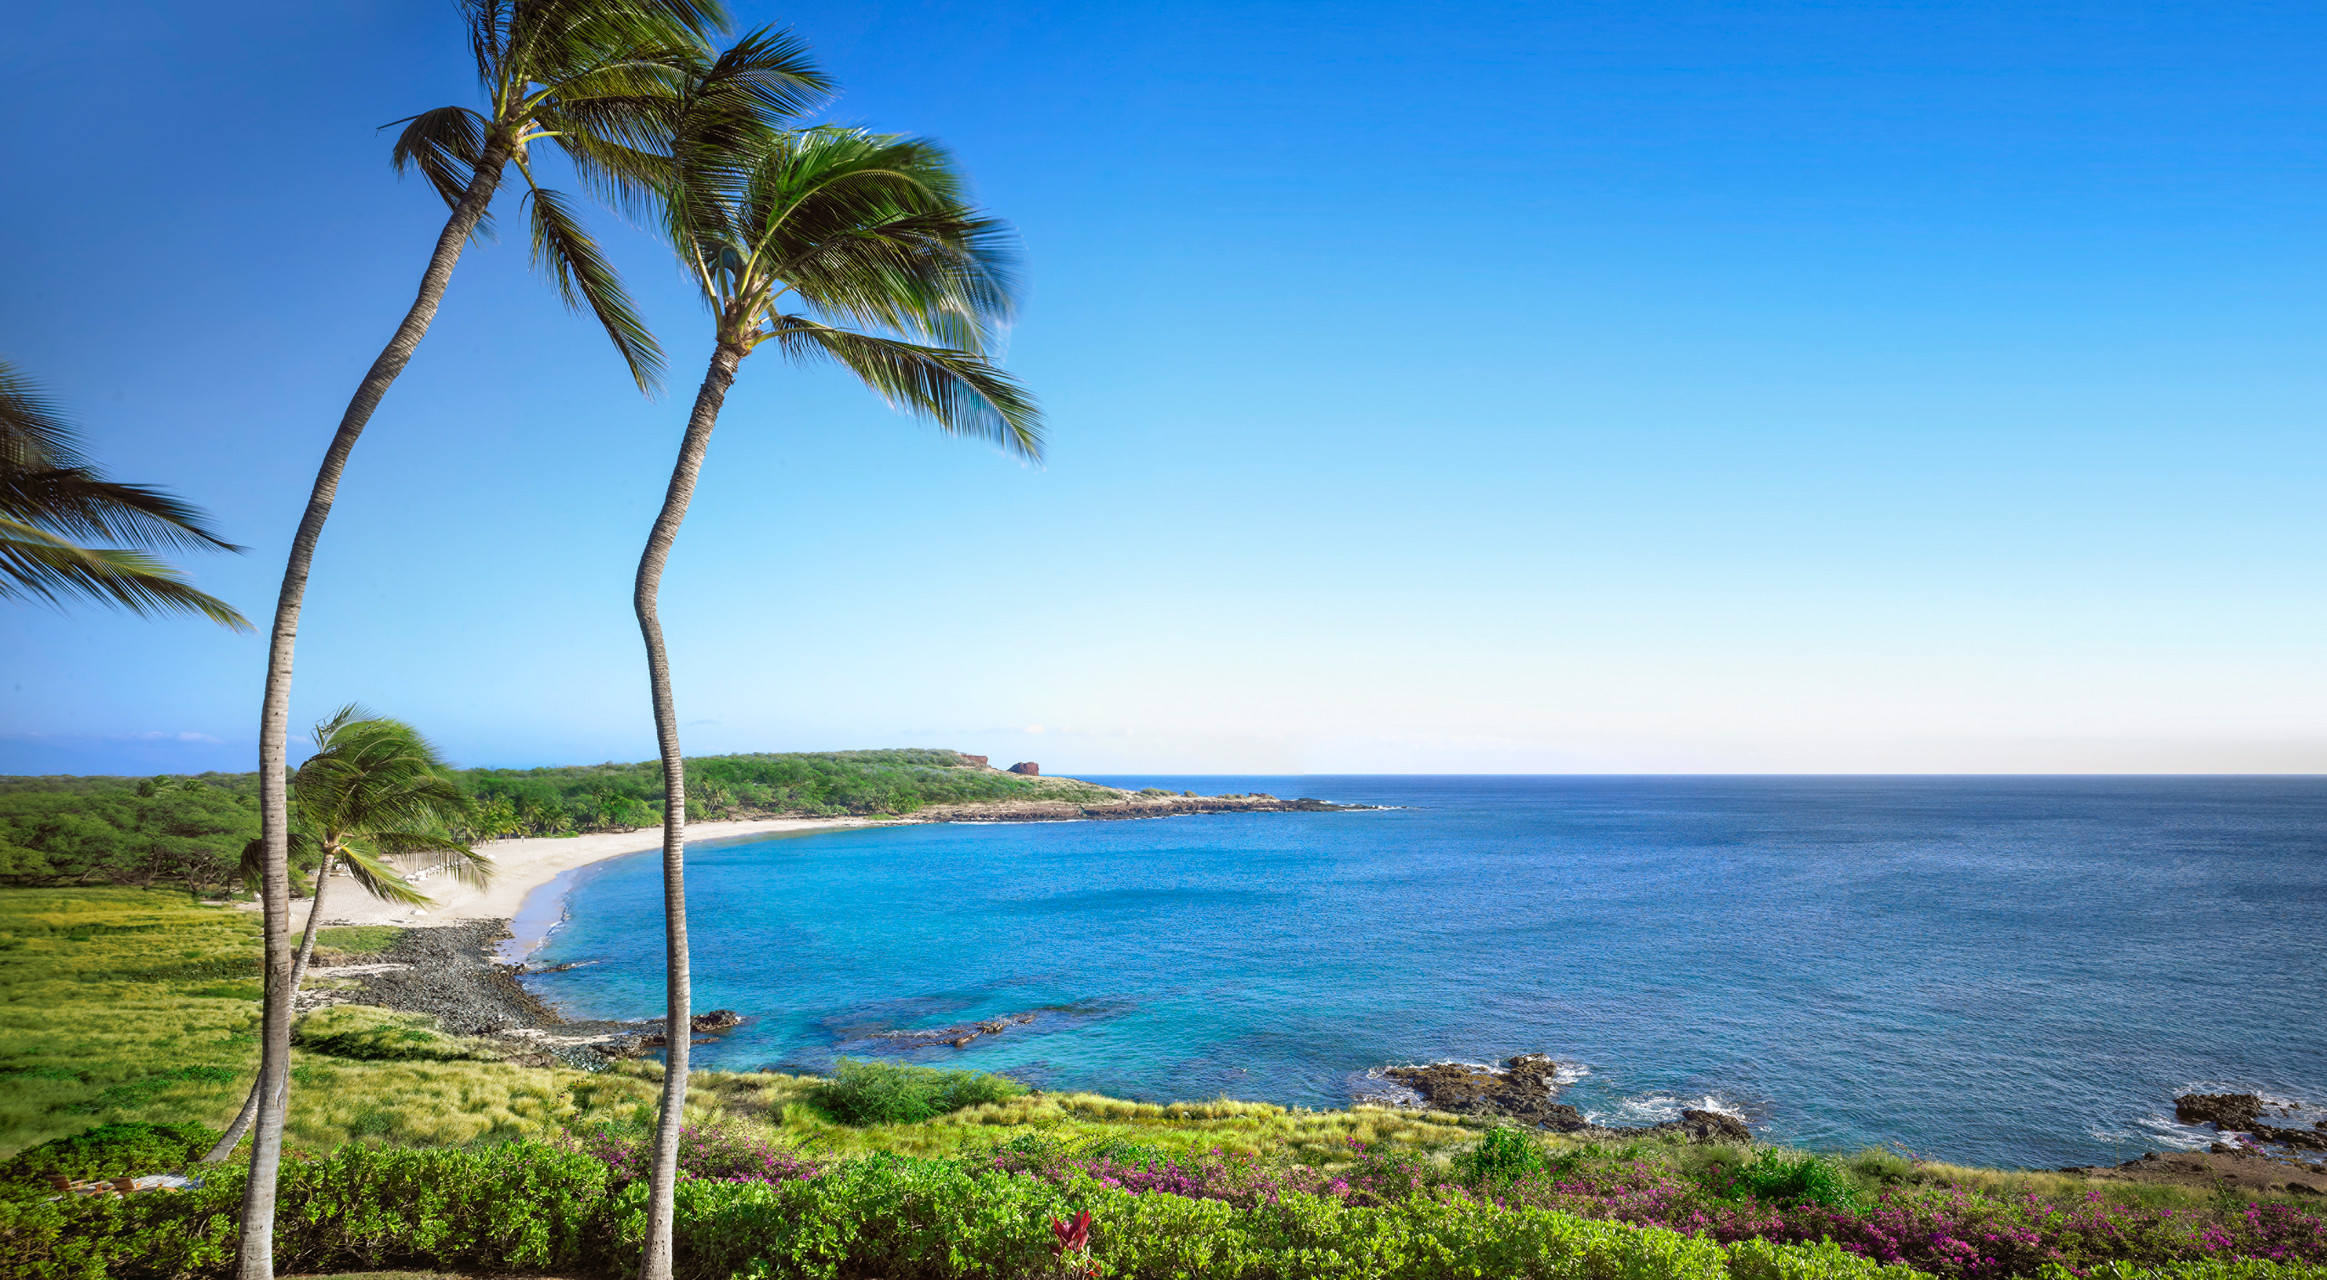 Hulopoe Bay: Where pods of Hawaiian spinner dolphins play and the beach is paradise found